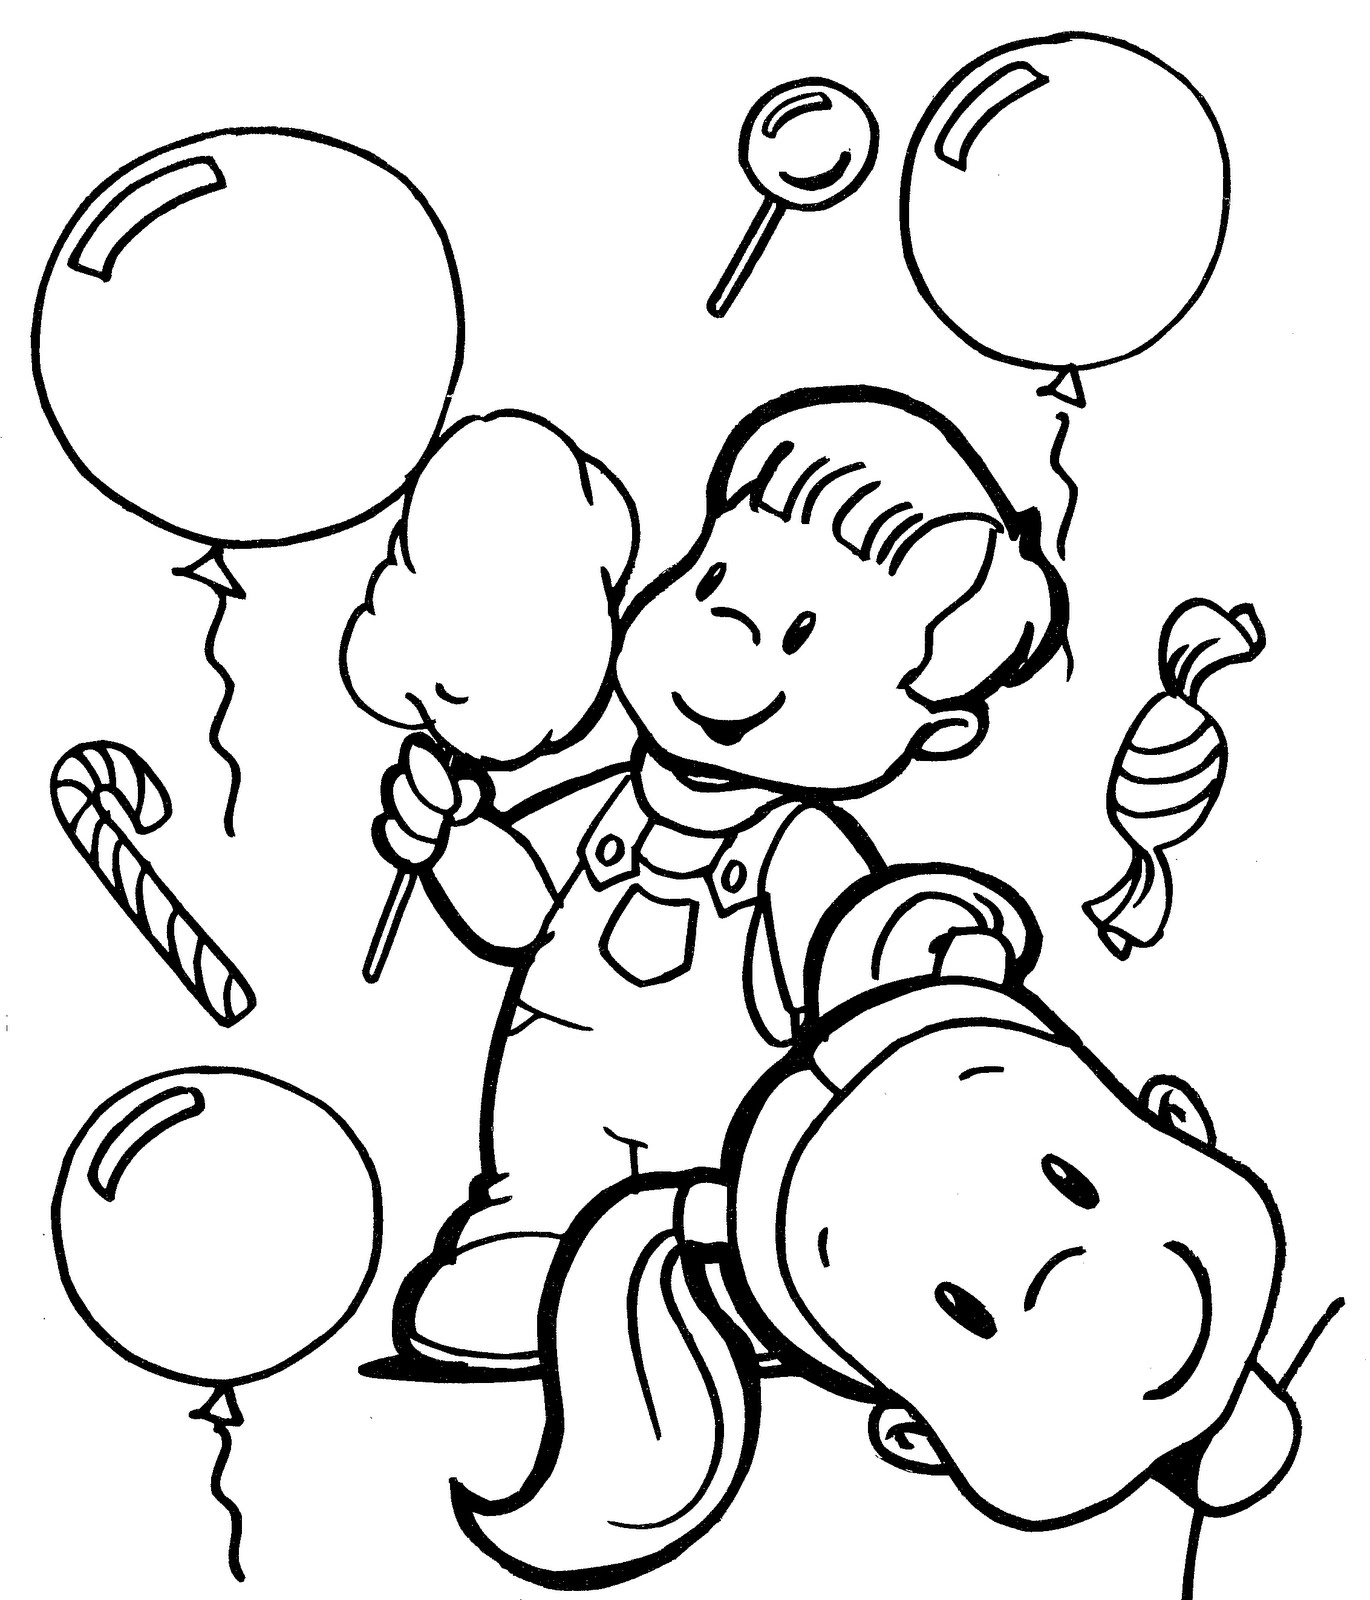 Free E Coloring Pages In Hitizexytgithub